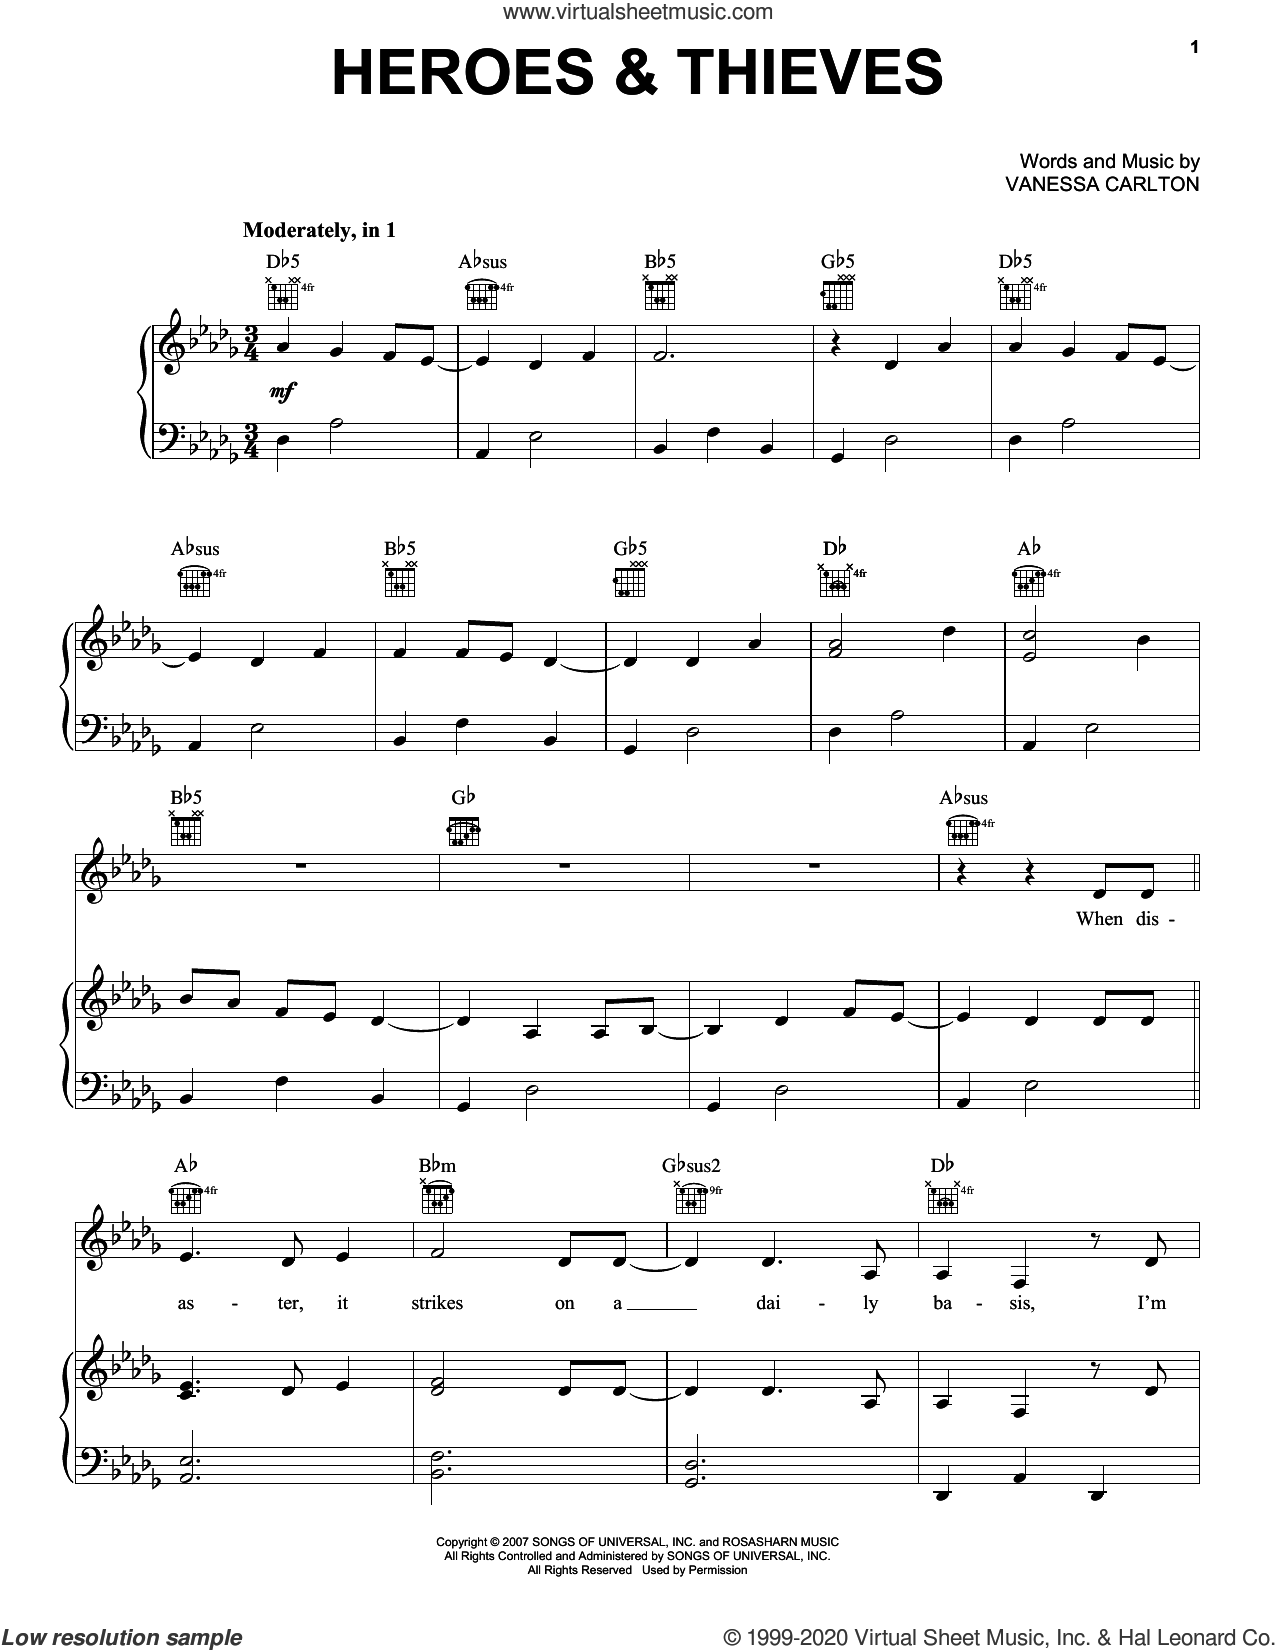 Heroes and Thieves sheet music for voice, piano or guitar by Vanessa Carlton, intermediate skill level